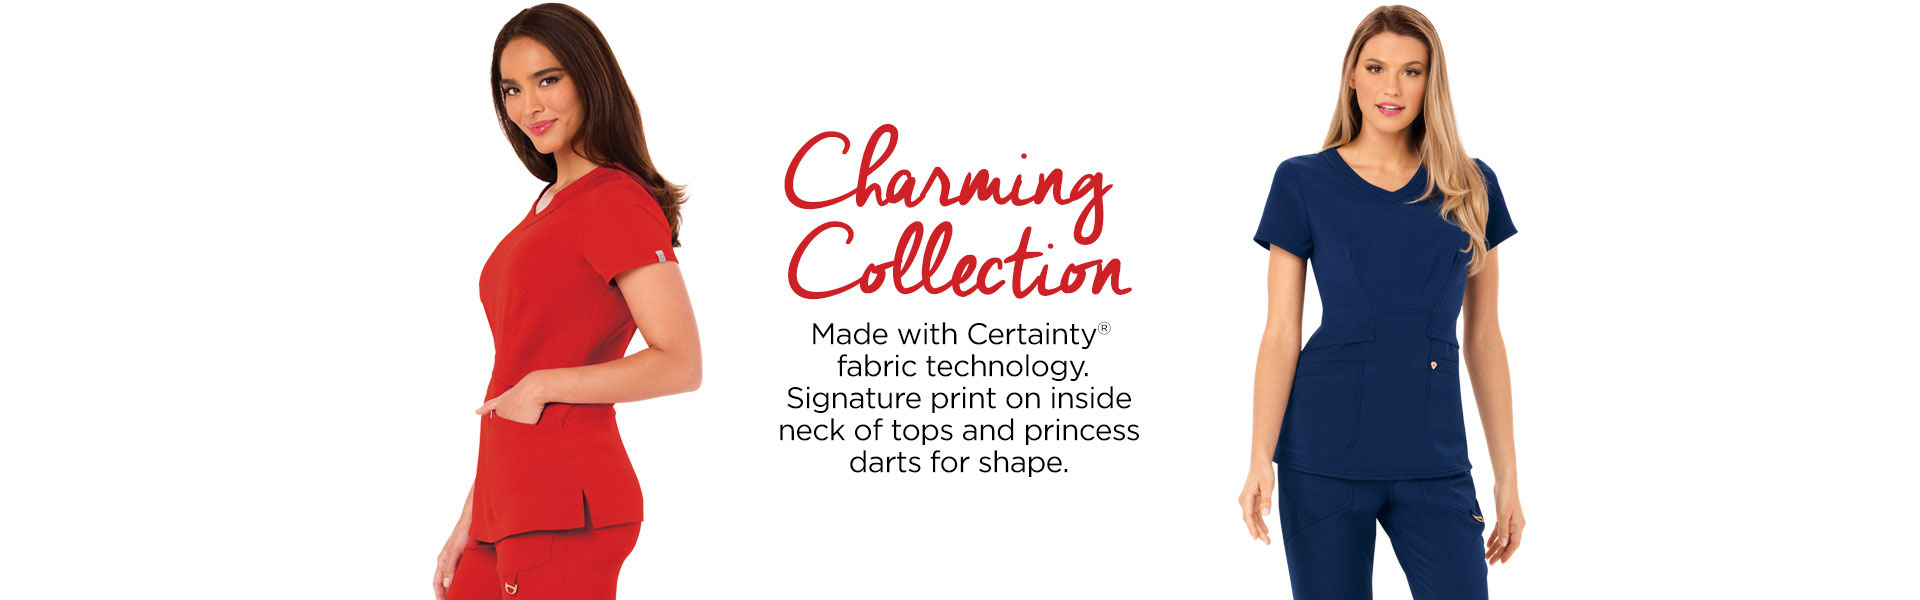 Charming Collection by Sofia Vergara